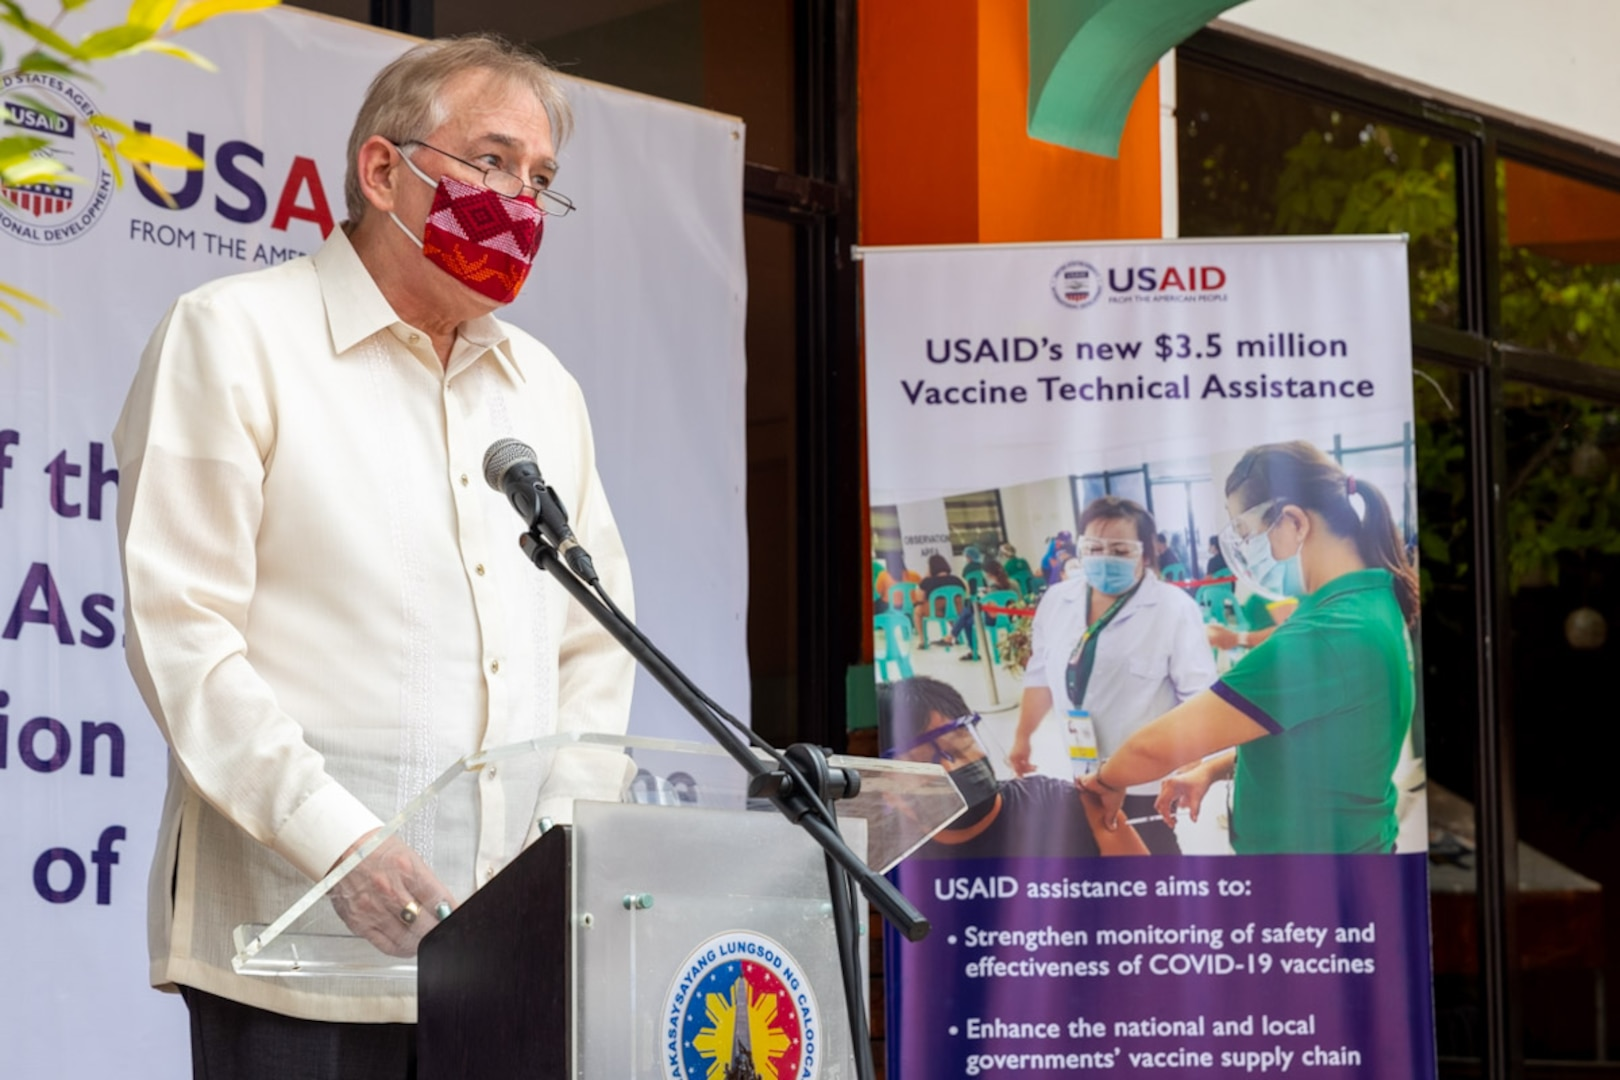 U.S. Provides Php170 Million to Support COVID-19 Vaccine Deployment in the Philippines